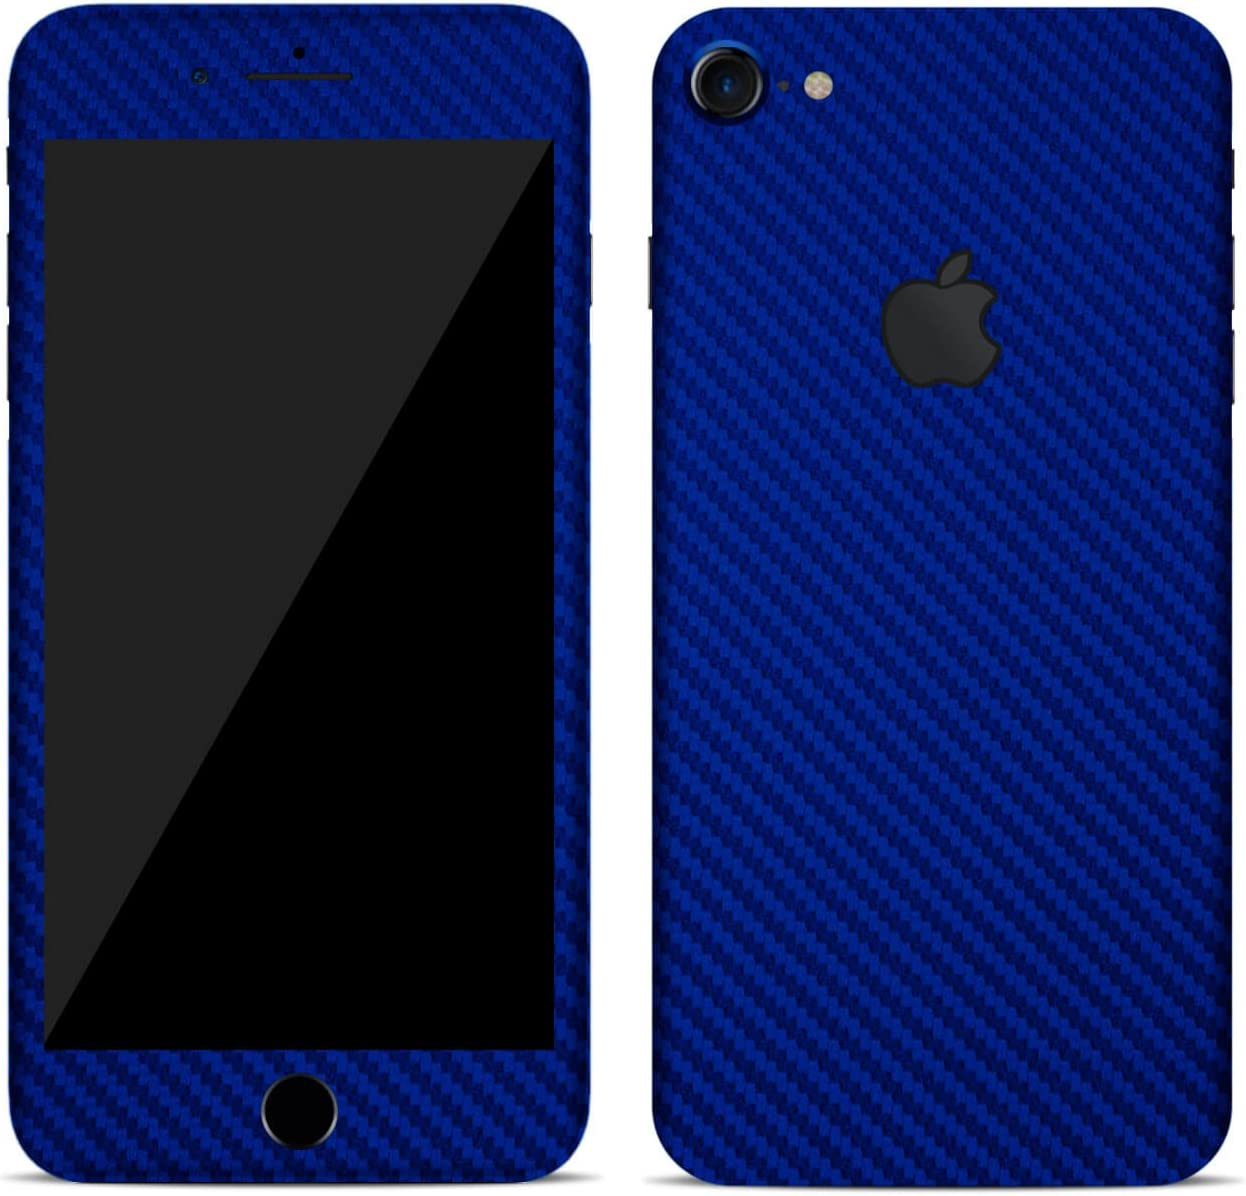 plus Full Body Wrap iphone 7 plus, matt orange SmartSkins Textured skin sticker for iPhone 7 /& 7